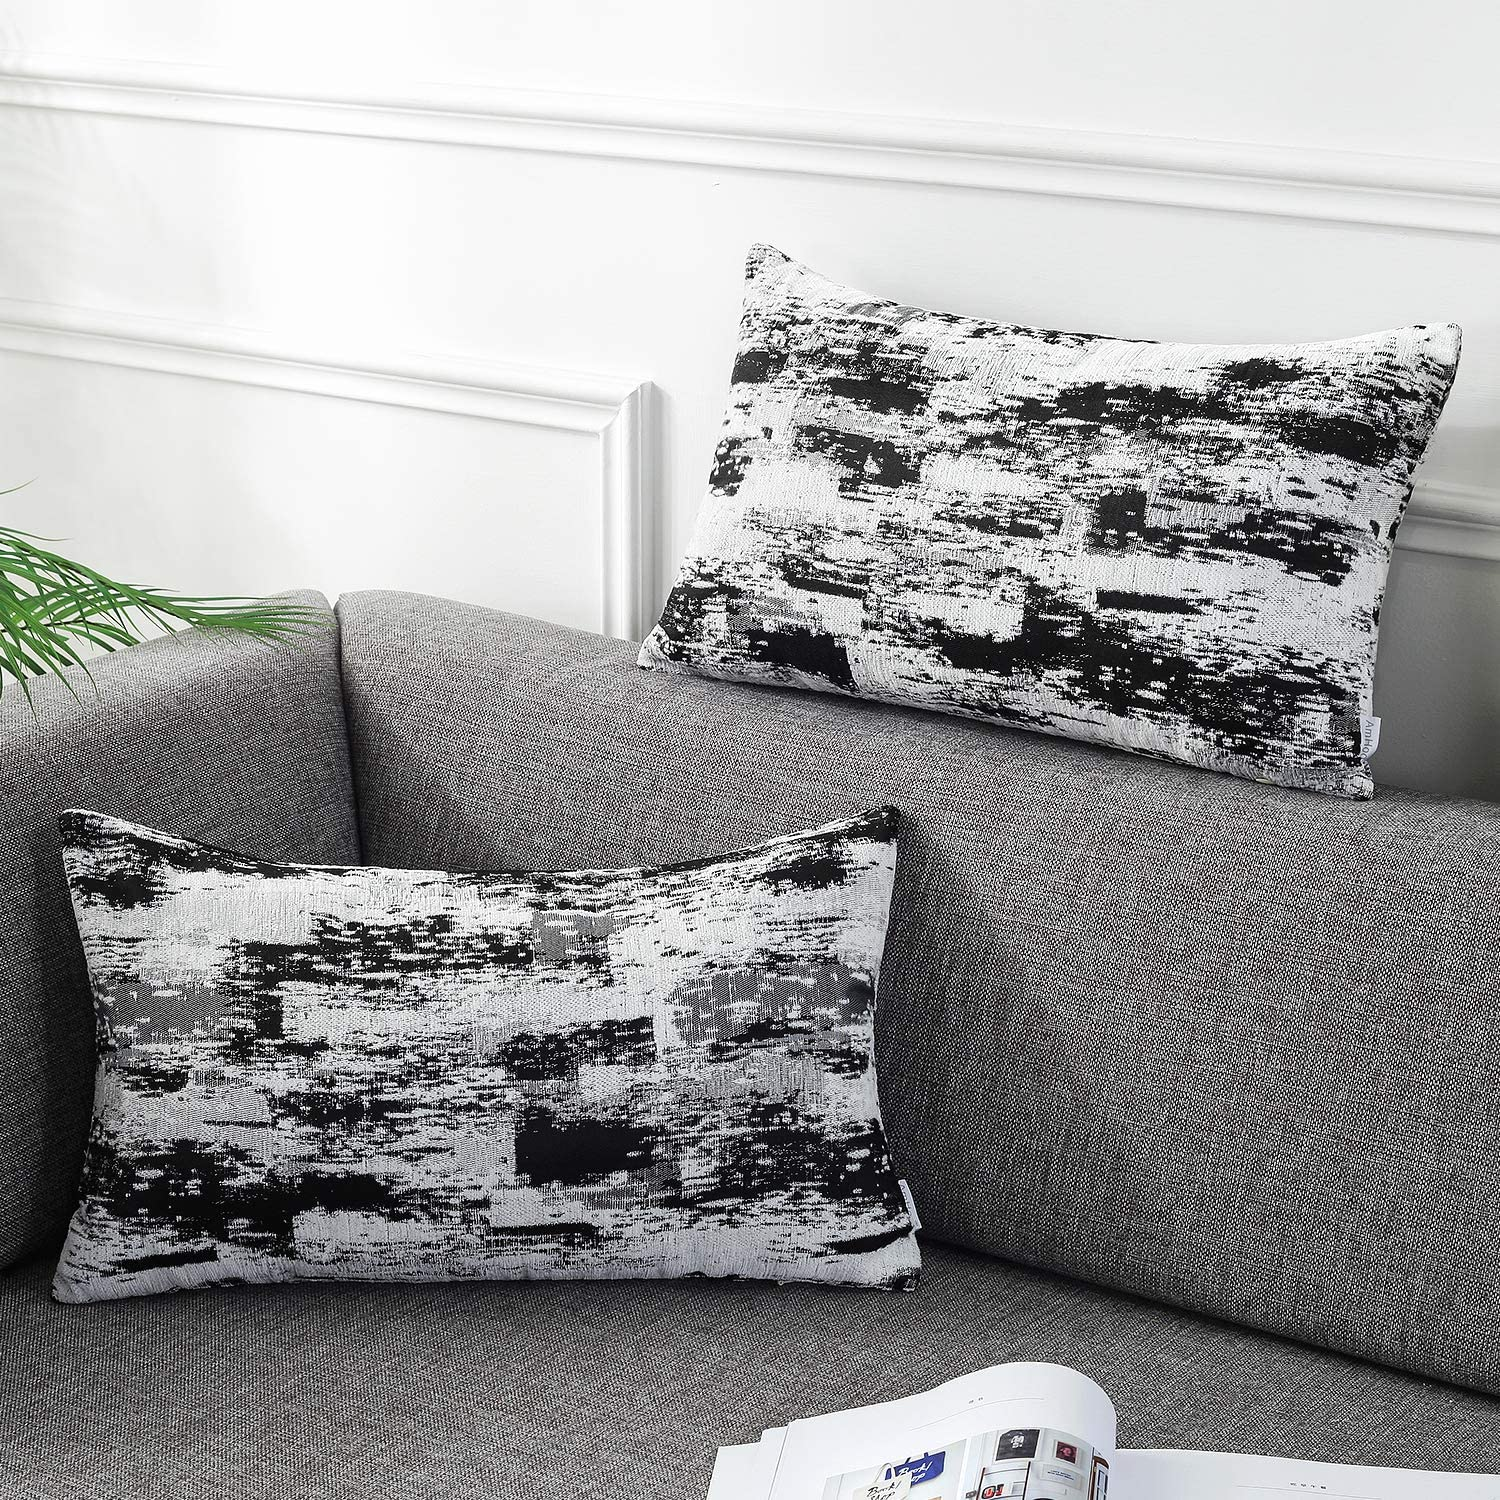 AmHoo Pack of 2 Chenille Abstract Plaid Throw Pillow Covers Art Decorative Square Accent Pillowcase for Cushion Bed Sofa 12x20Inch Black